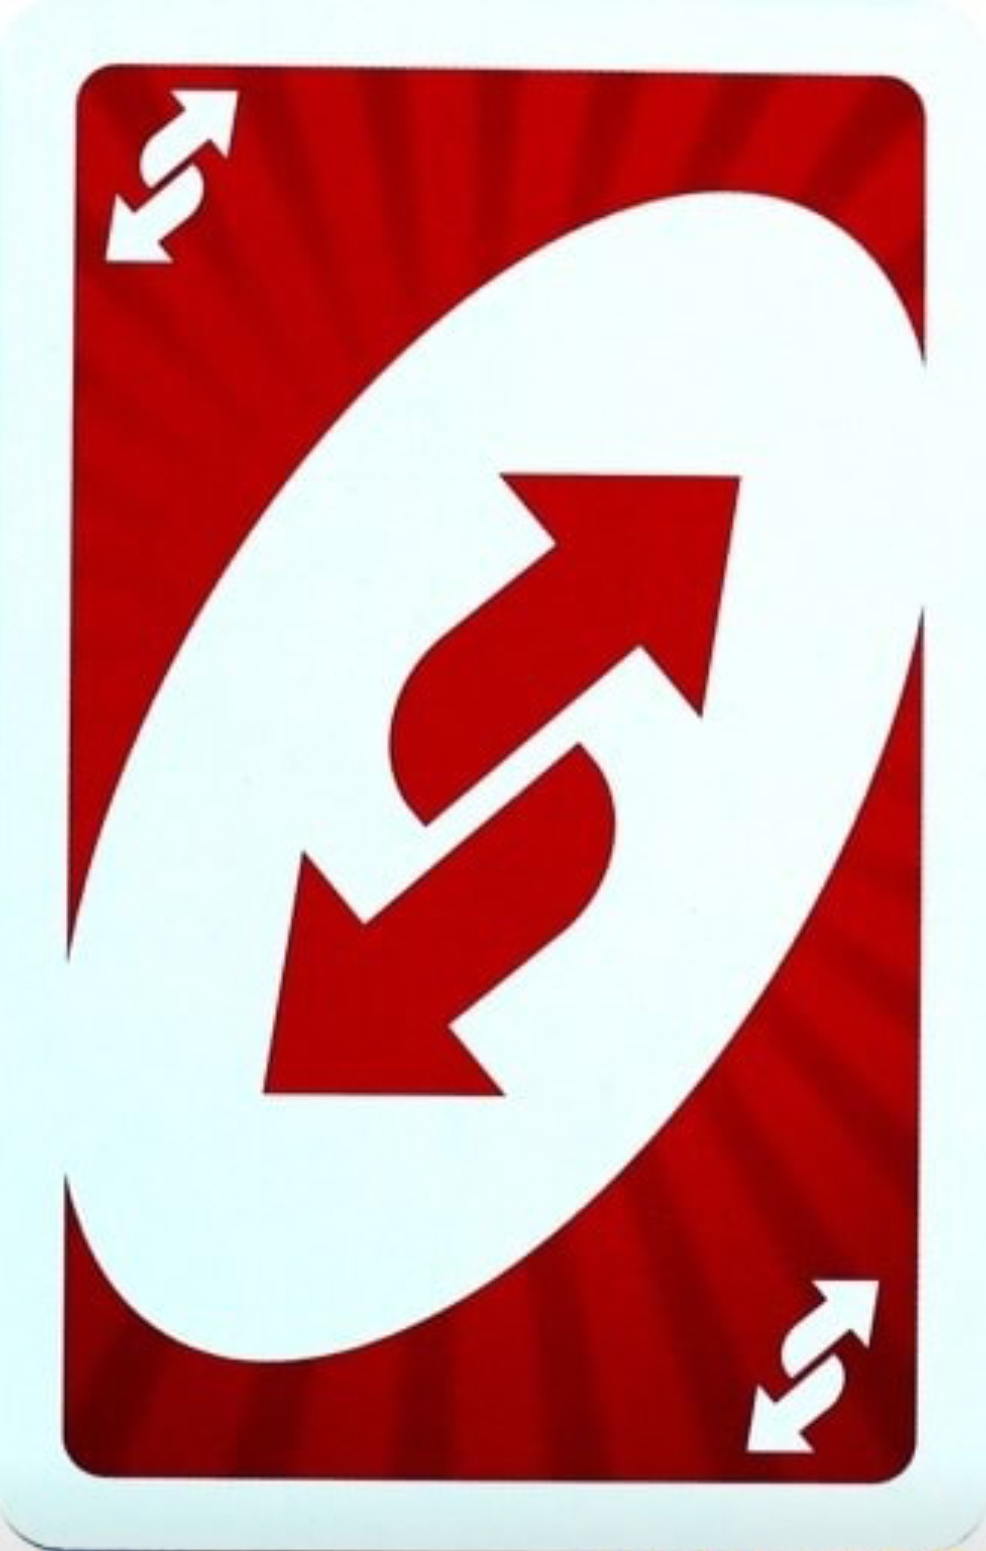 Red Uno Reverse Card By Gomesuy445 On Uno Cards Cute Love Memes Card Template